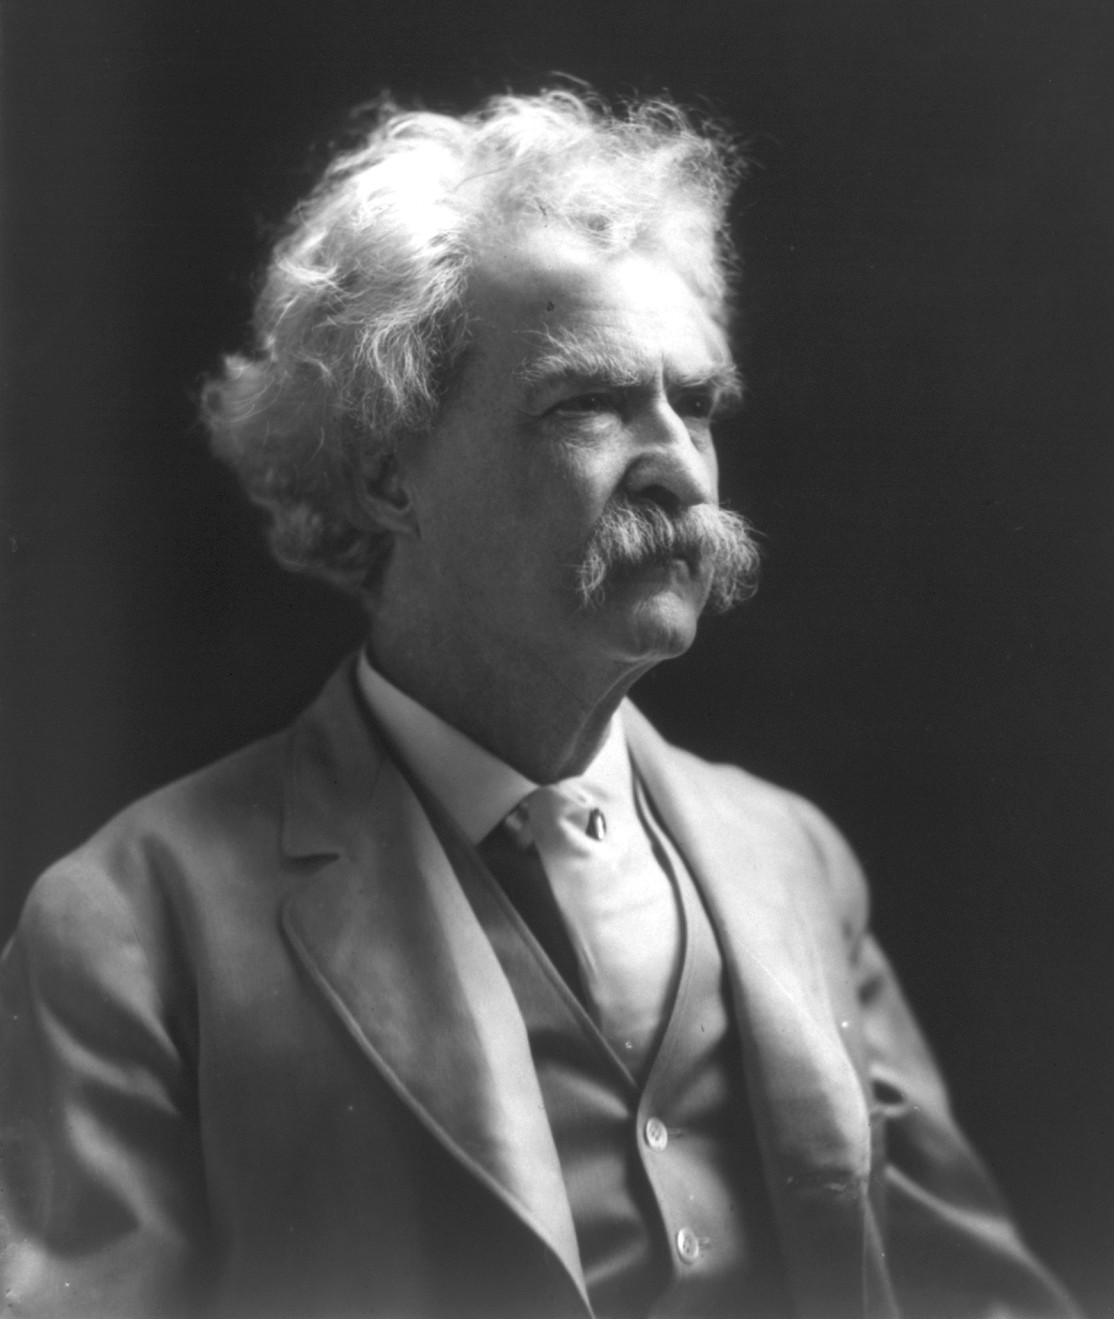 http://upload.wikimedia.org/wikipedia/commons/3/31/MarkTwain.LOC.jpg